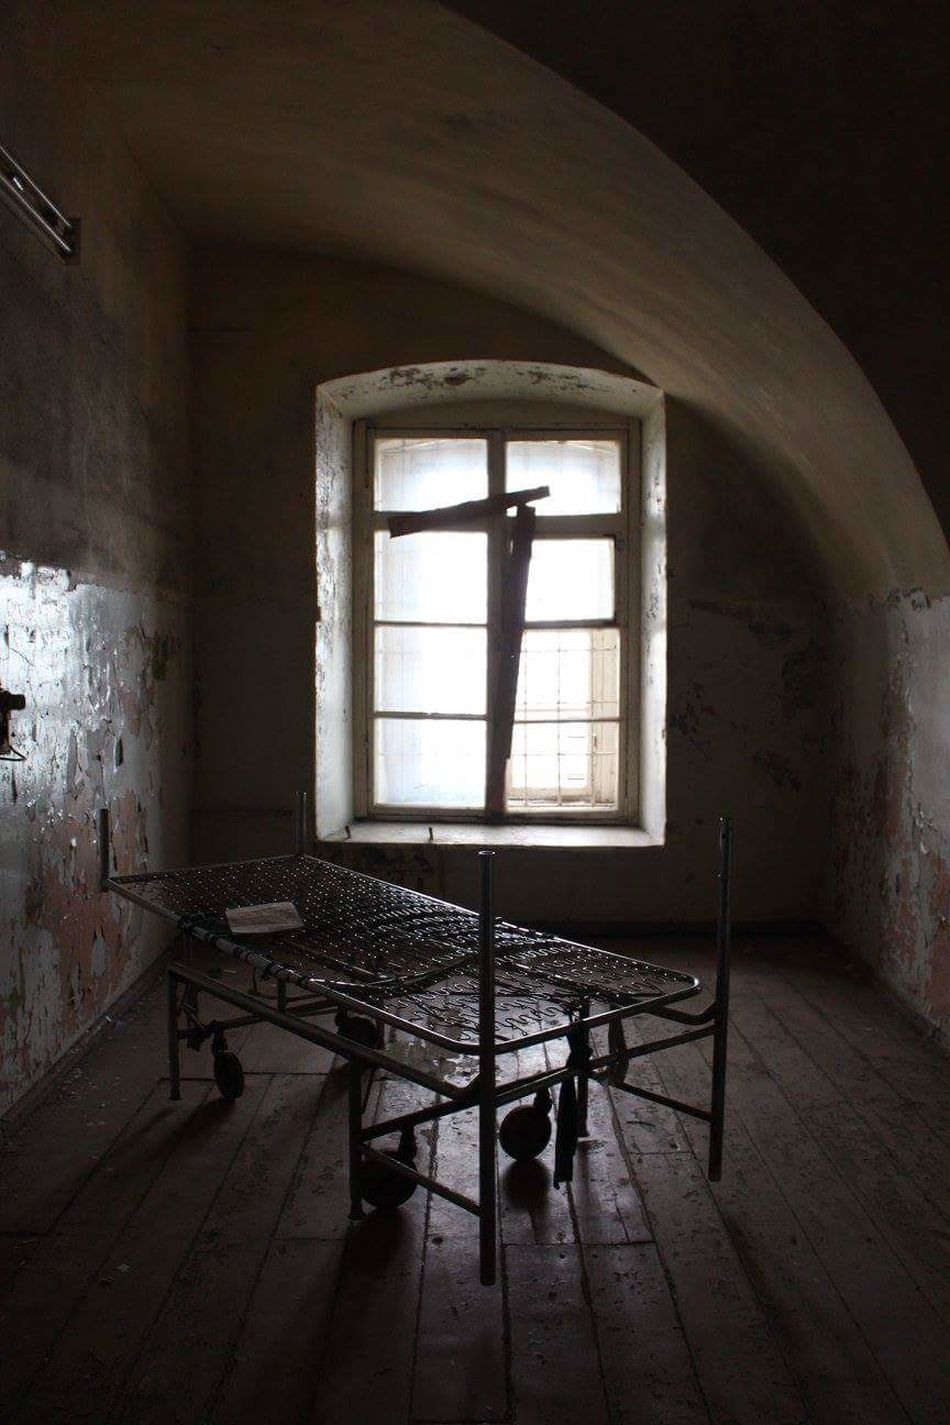 My Year My View exploring old soviet prison Prison Patarei Soviet Tallinn Estonia Tallinn Estonia Bed Window Indoors  Abandoned No People Bad Condition Architecture Contrast Tallinn Old Town Soviet Era Prison Museum Miles Away